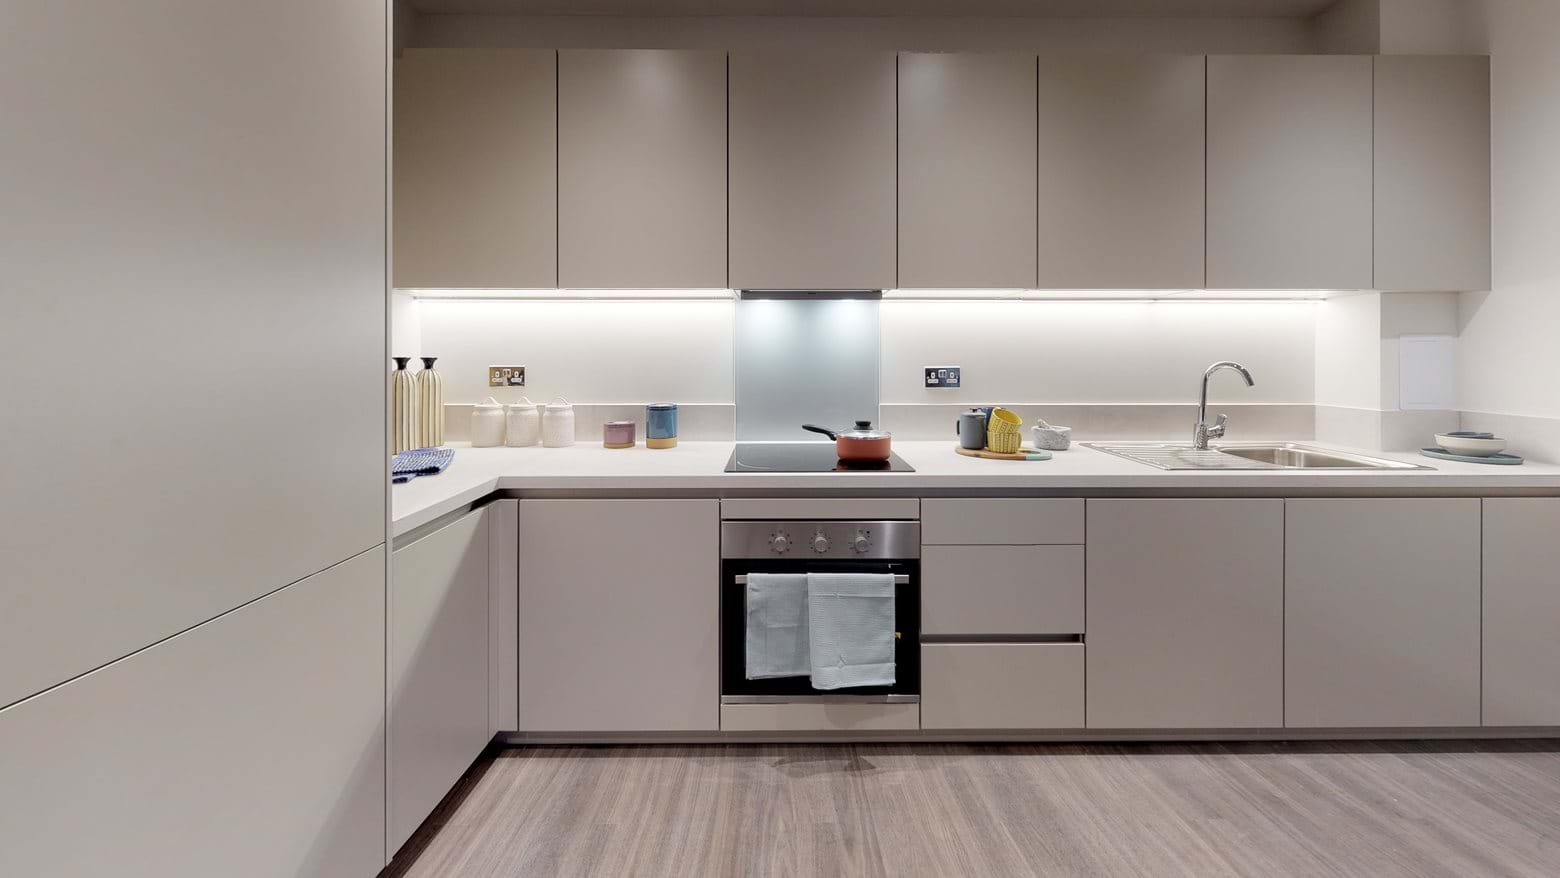 Patchworks - Shared Ownership Kitchen